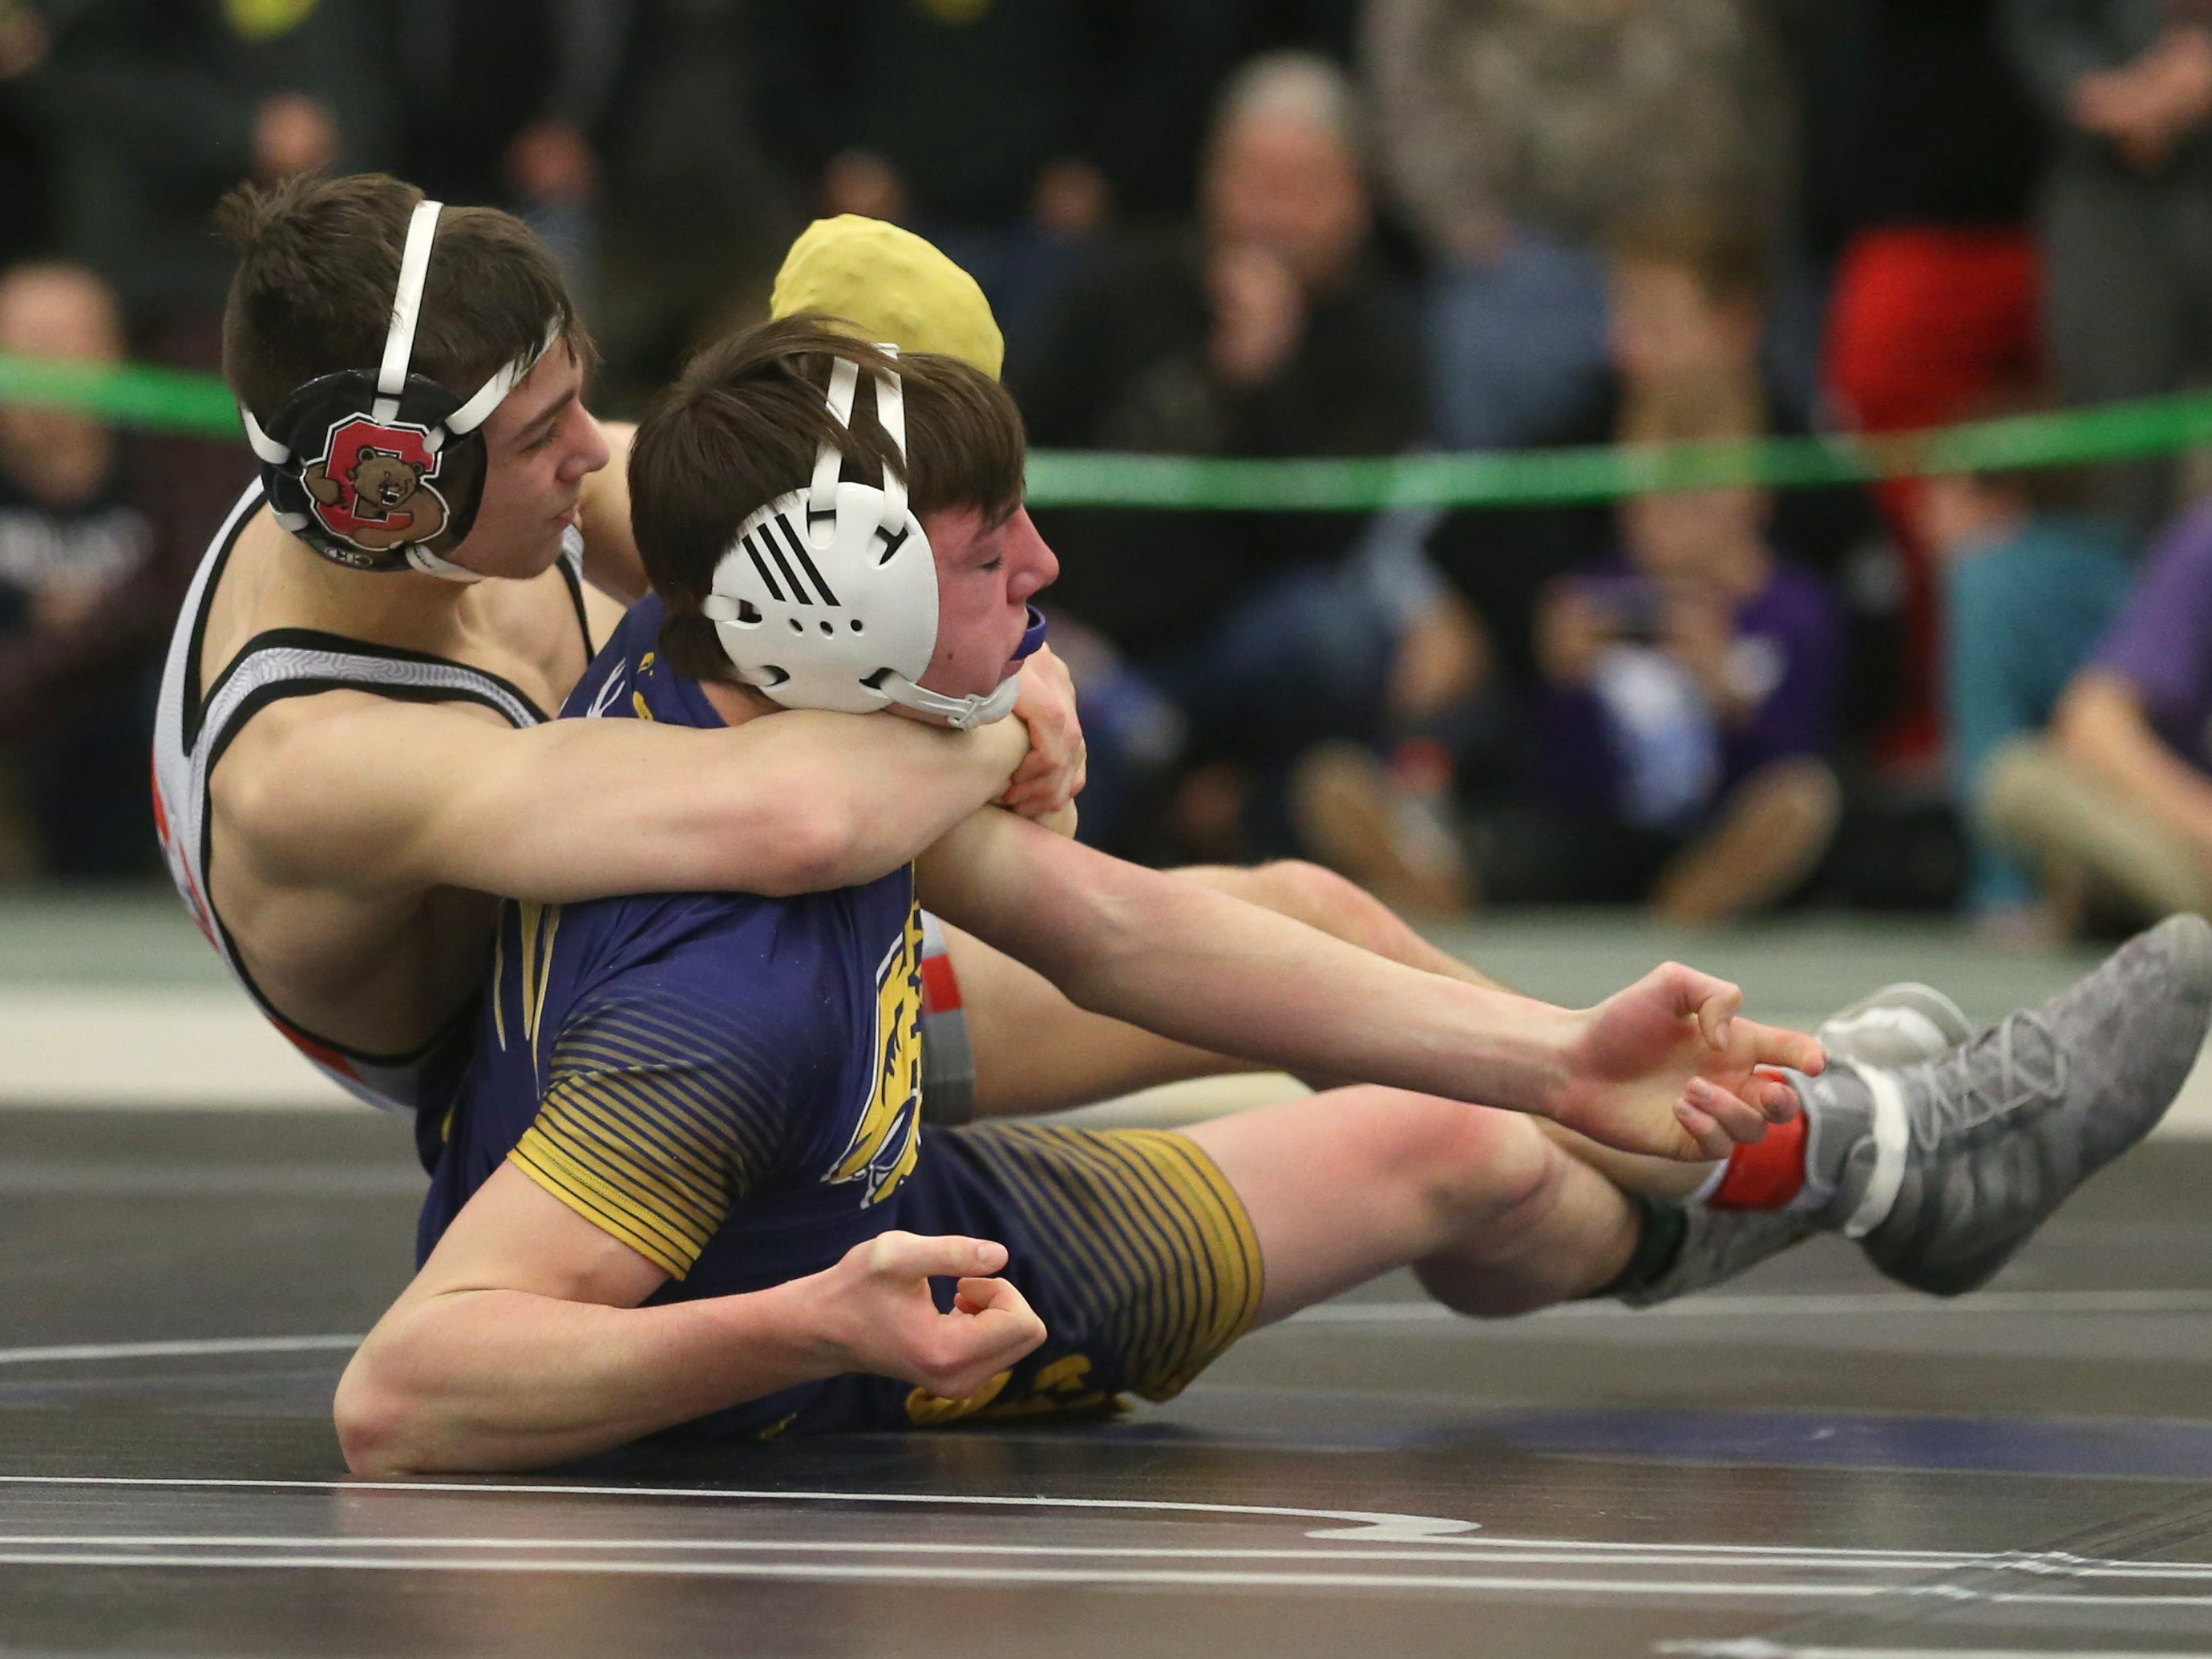 Pal-Mac's Ethan Ferro, left, rolls back Justin Smith, Penn Yan/Marcus Whitman, for back points, in their Division 2, 132 pound match at the 52nd Annual State Wrestling Qualifier at the College at Brockport Saturday, Feb. 9, 2019.